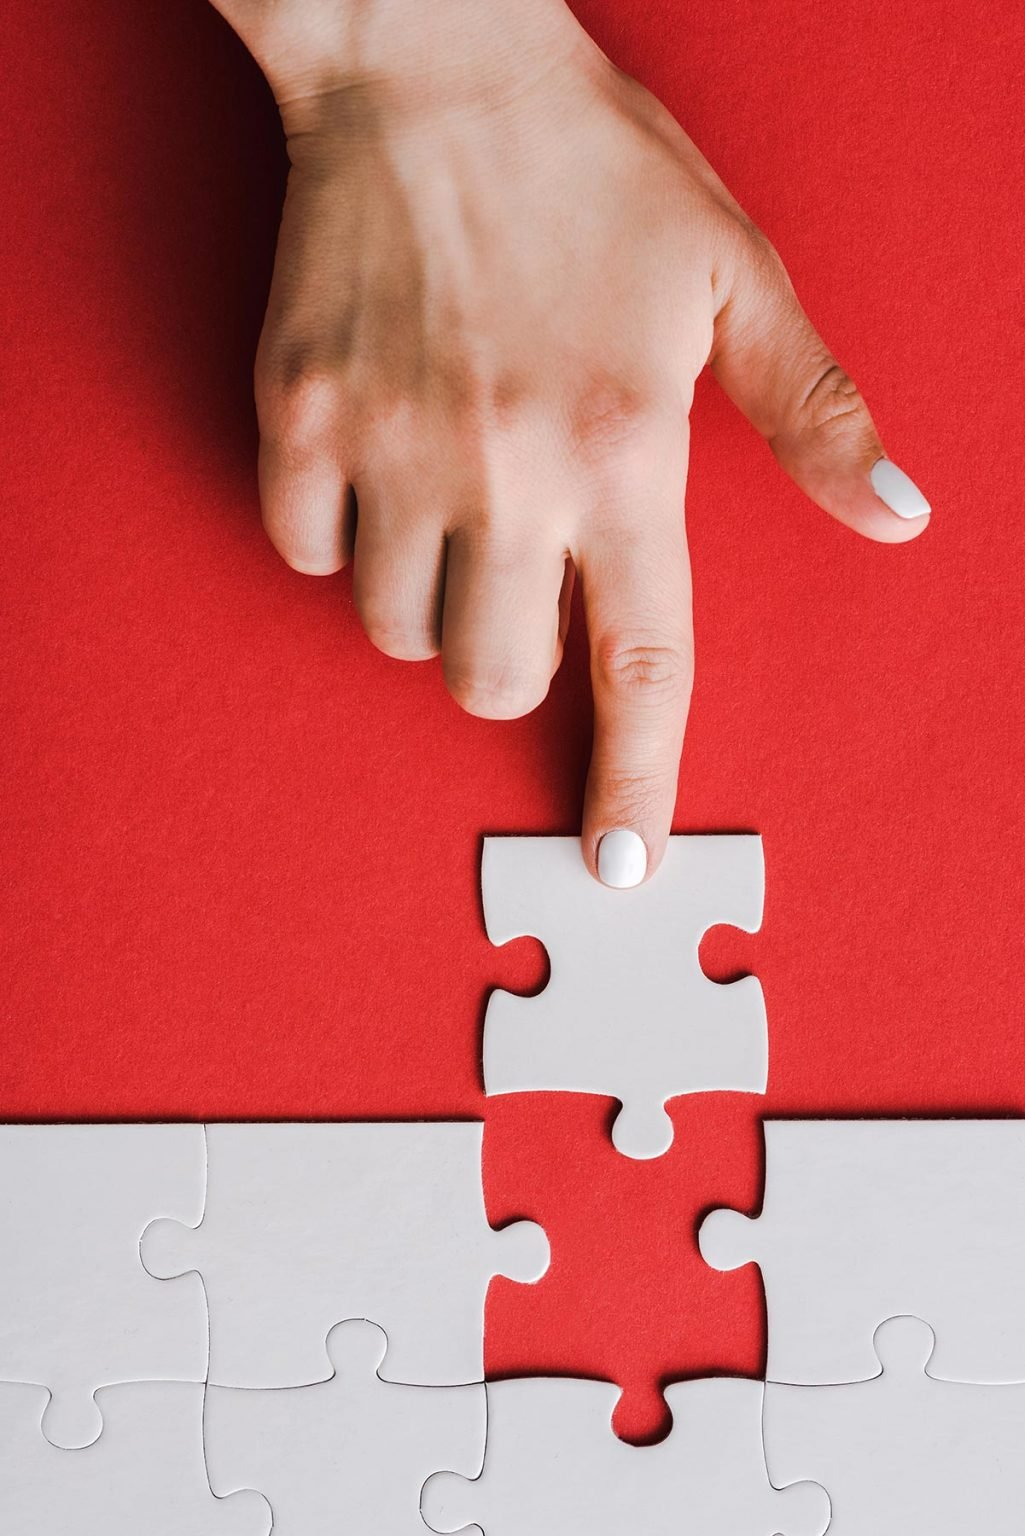 top-view-of-woman-pointing-with-finger-at-jigsaw-n-U5QPV3E-1.jpg